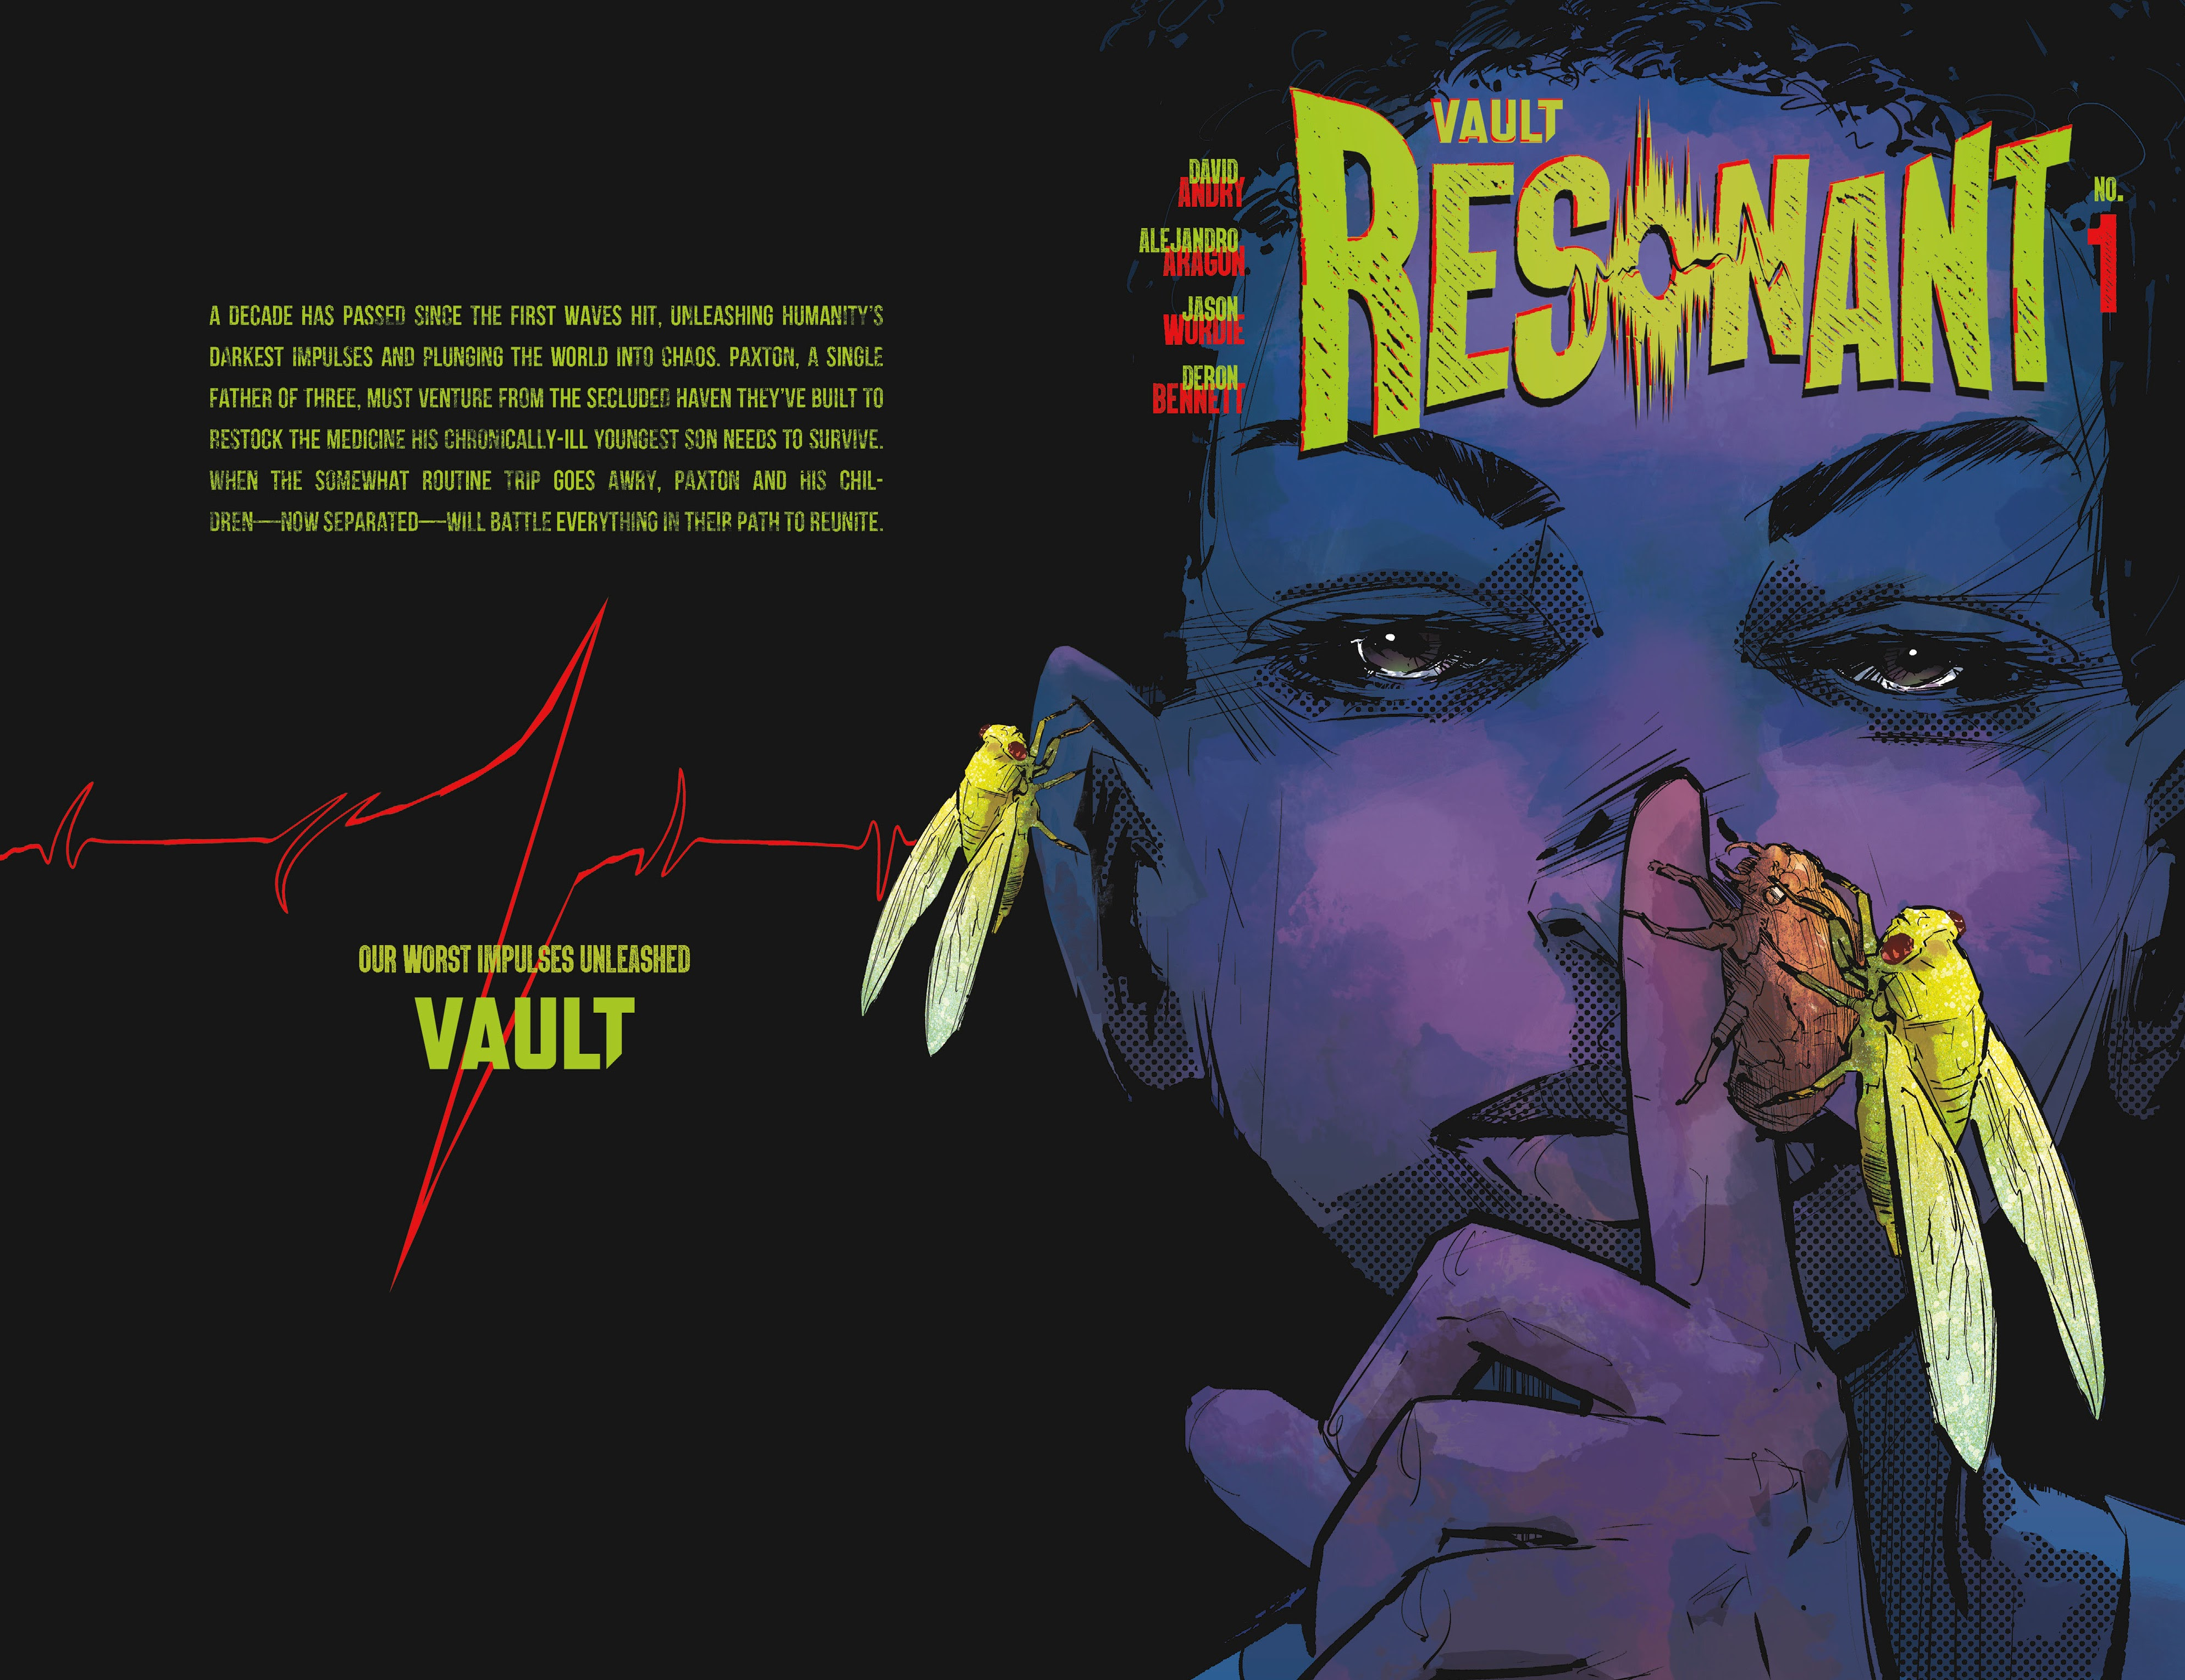 Read online Resonant comic -  Issue #1 - 1